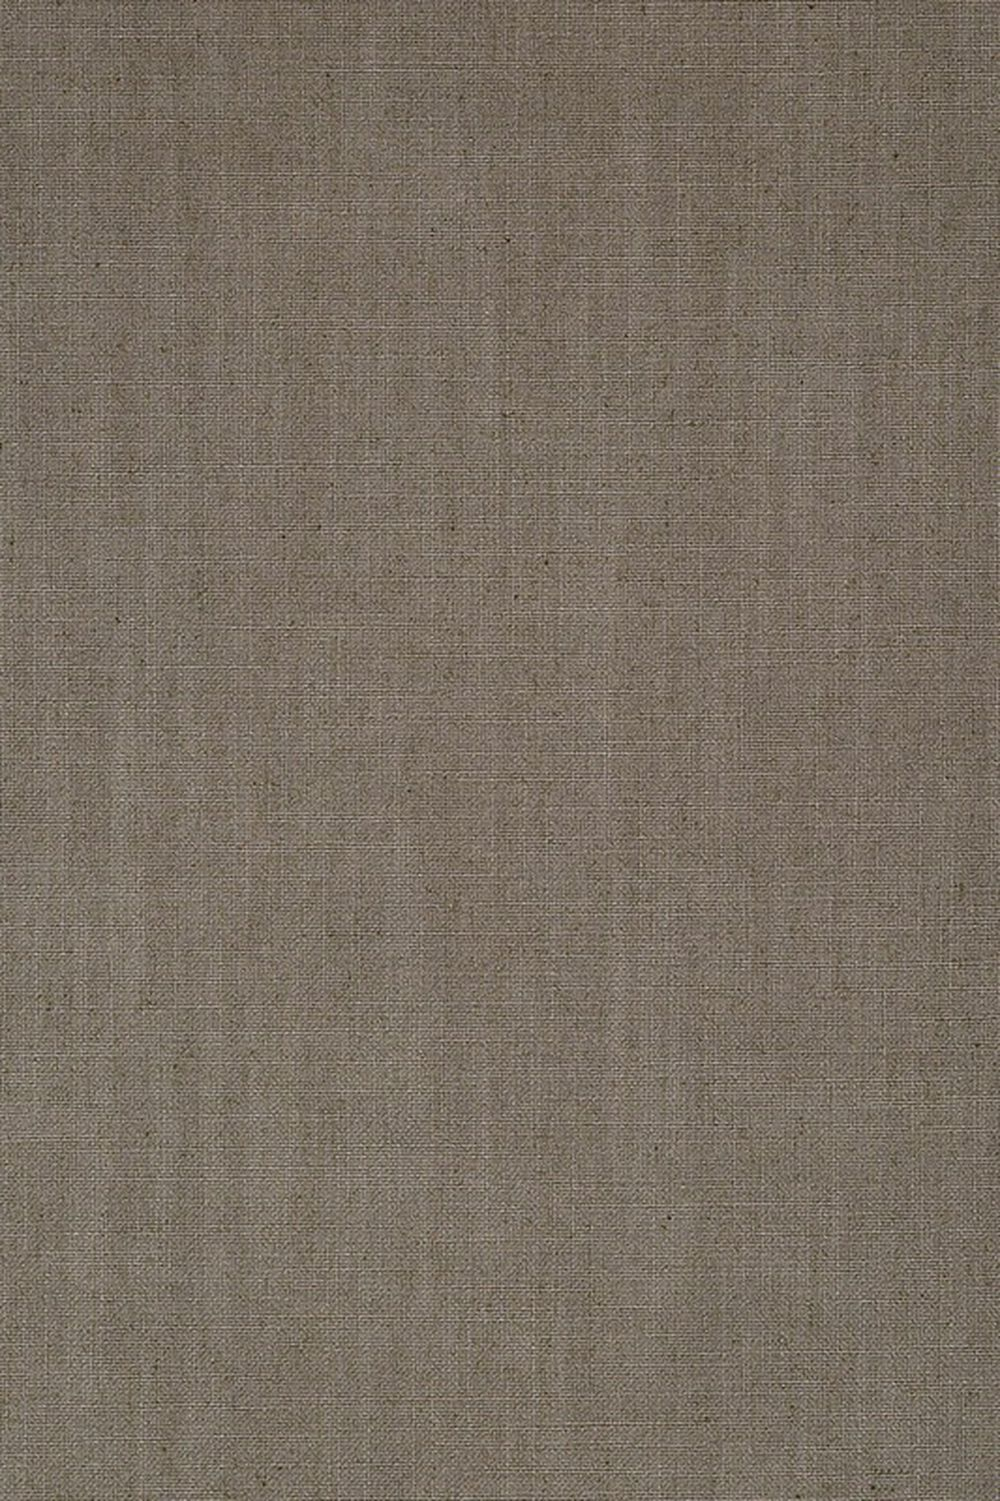 Photo of the fabric Lusk Ash swatch by Pegasus. Use for Upholstery Heavy Duty, Accessory. Style of Plain, Texture